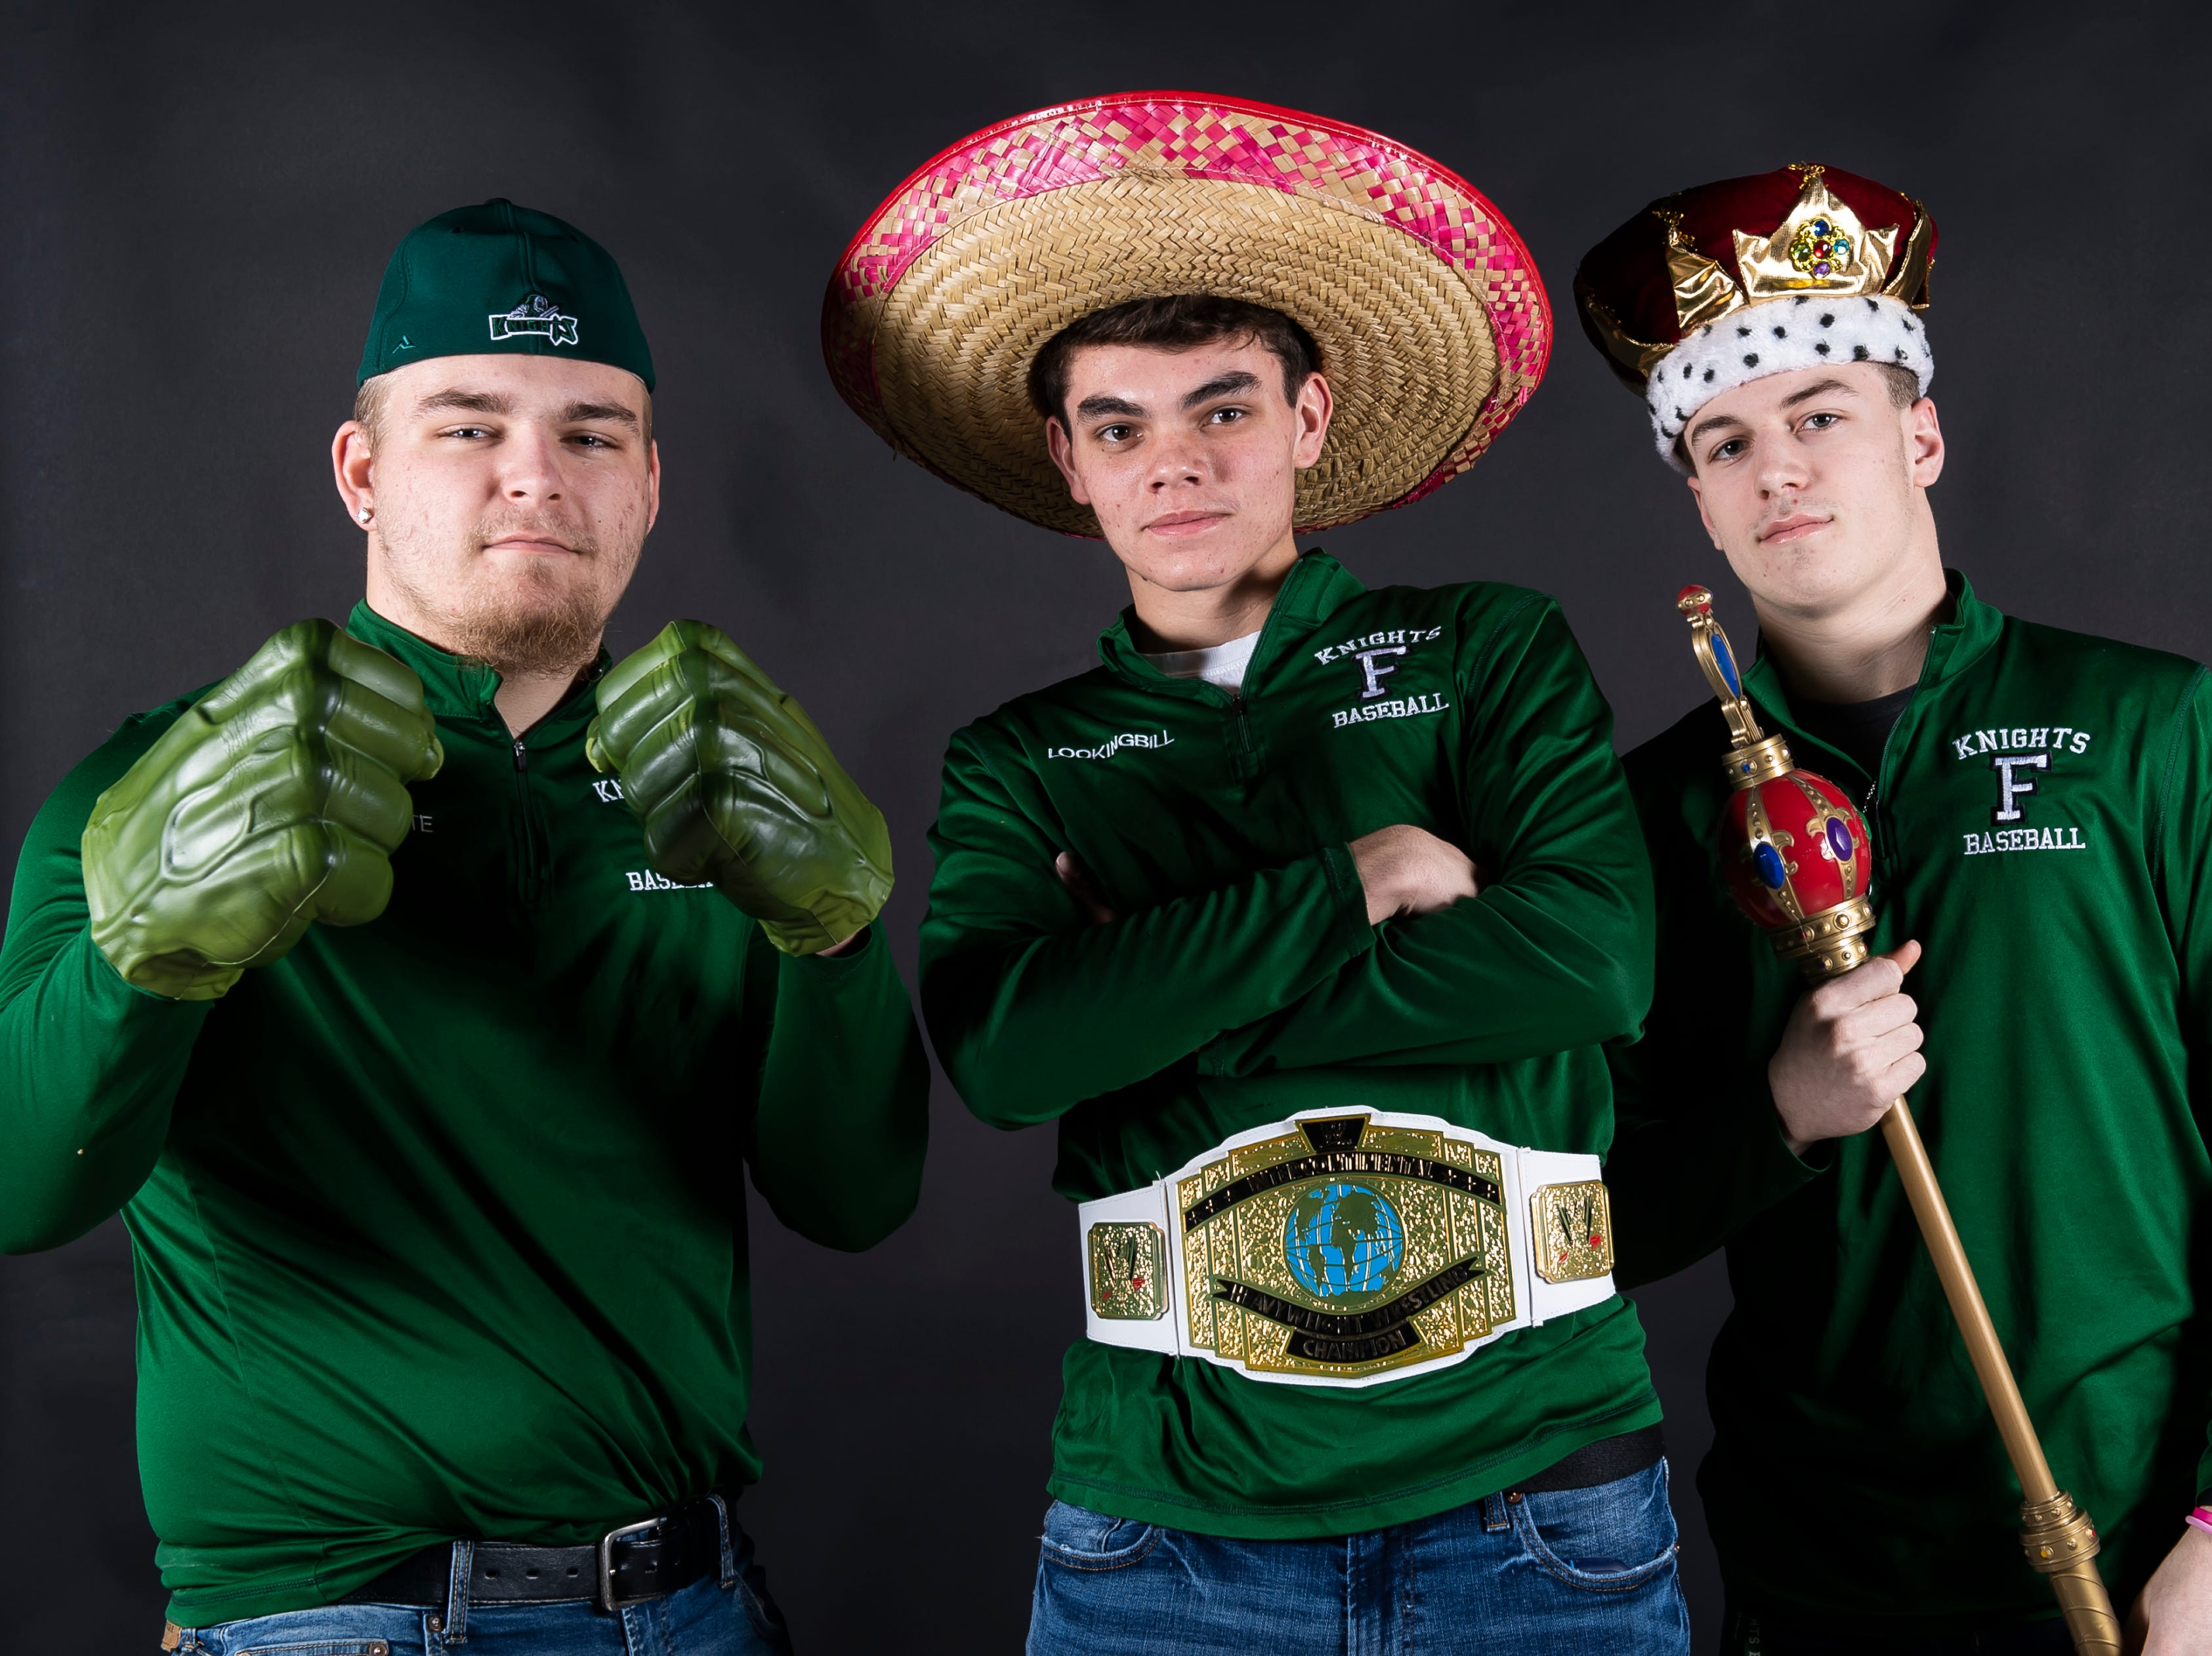 (From left) Fairfield baseball's Ethan Favorite, Chase Lookingbill and Zach Koons strike a pose in the GameTimePA photo booth during spring sports media day in York Sunday, March 10, 2019.